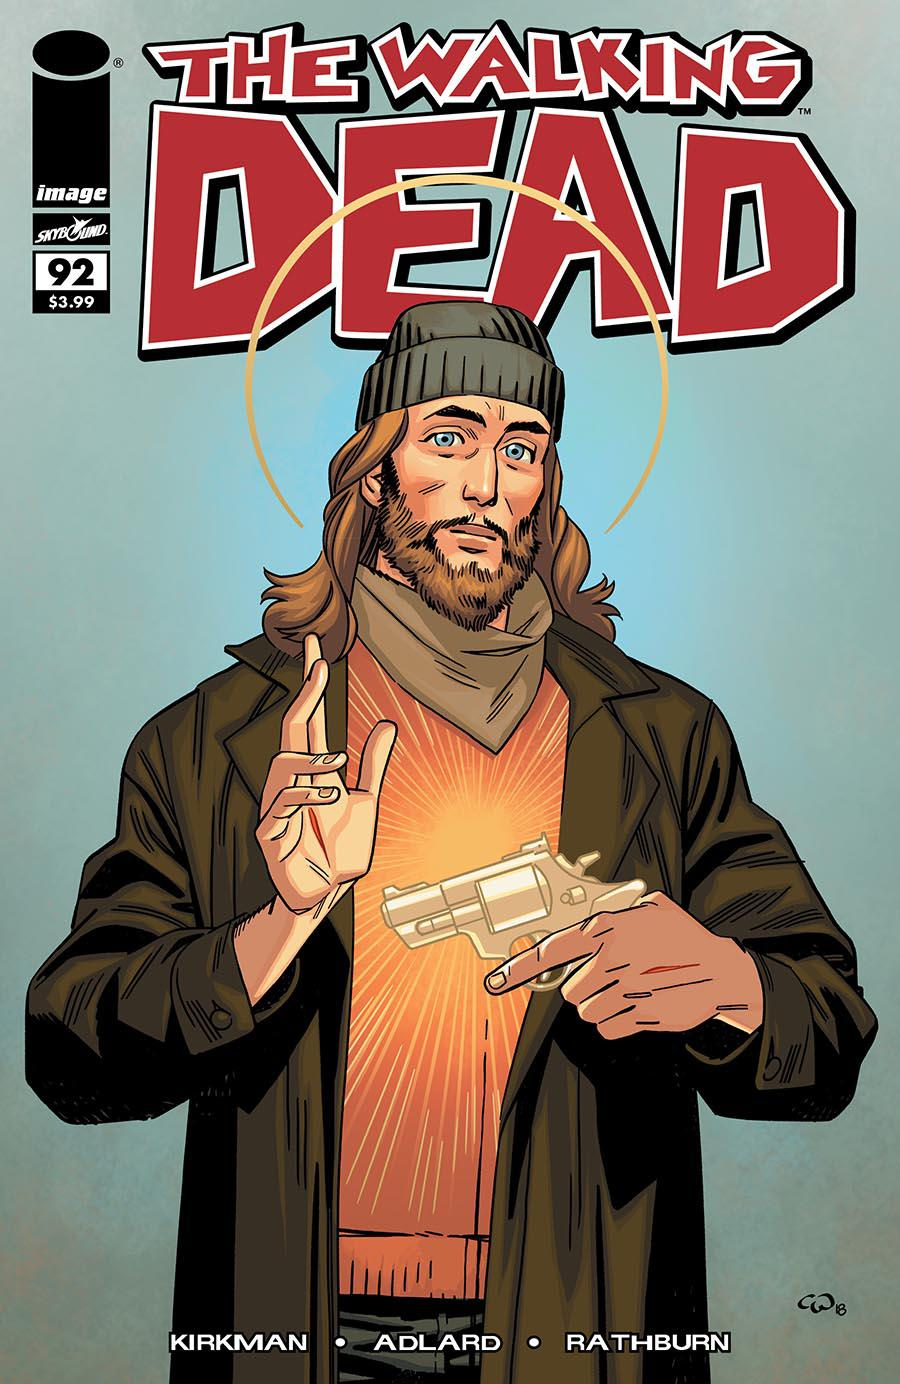 Walking Dead 15th Anniversary Blind Bag Edition #92 Cover B Cory Walker Color Cover Without Polybag